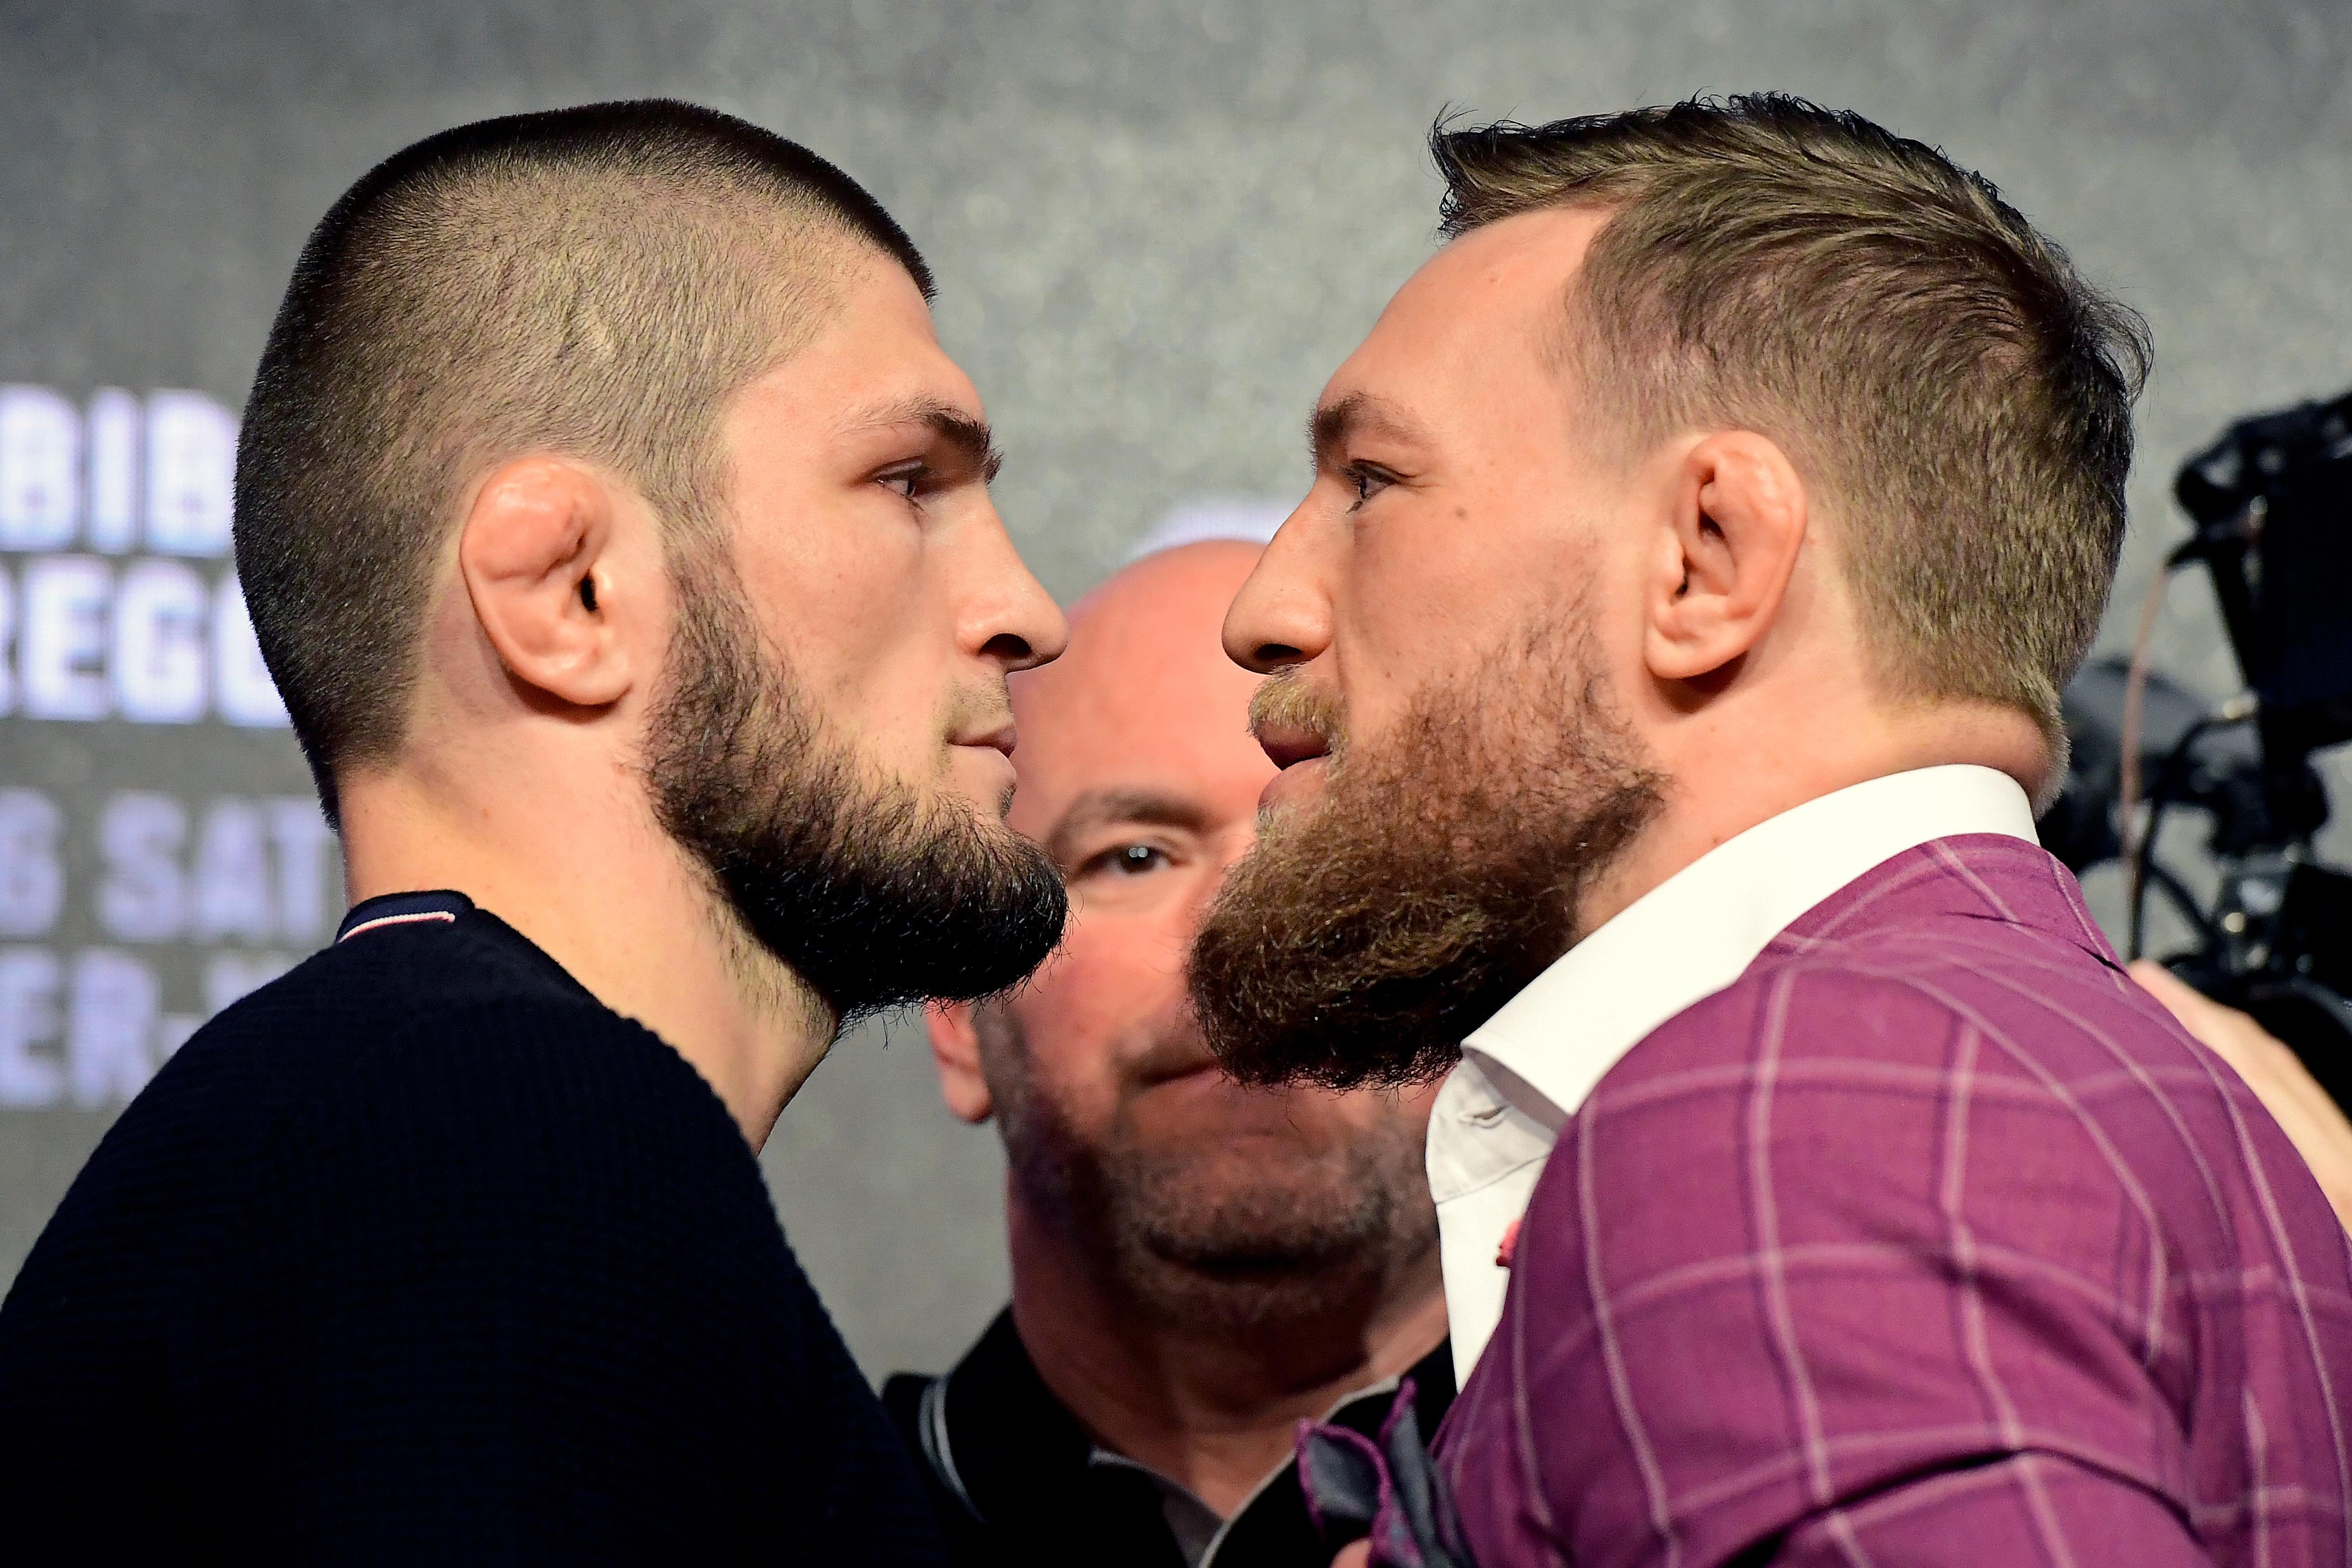 McGregor and Khabib will meet each other inside the Octagon at UFC 229 on Saturday